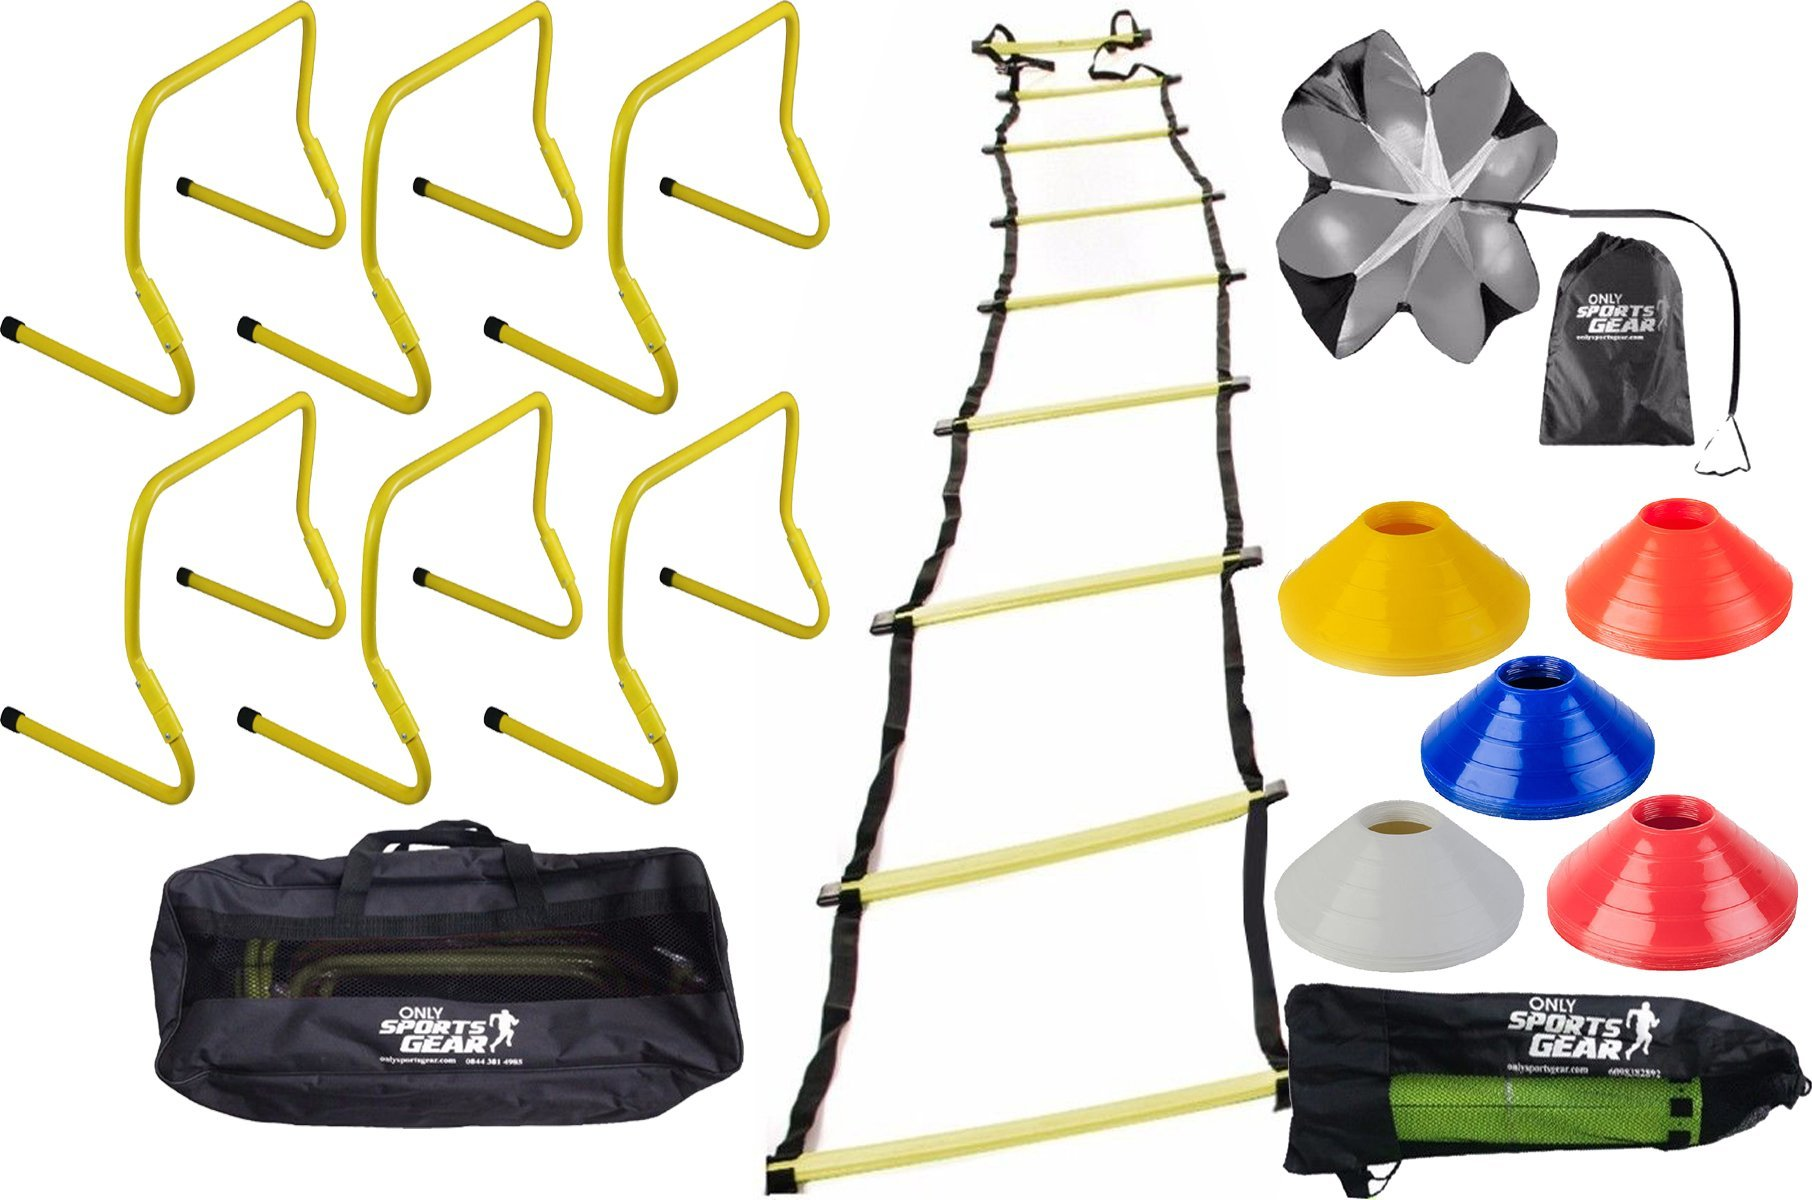 Sports Agility Training Adjustable Agility-hurdles-ladder-chute-cones Combo Set by Sportsgear US